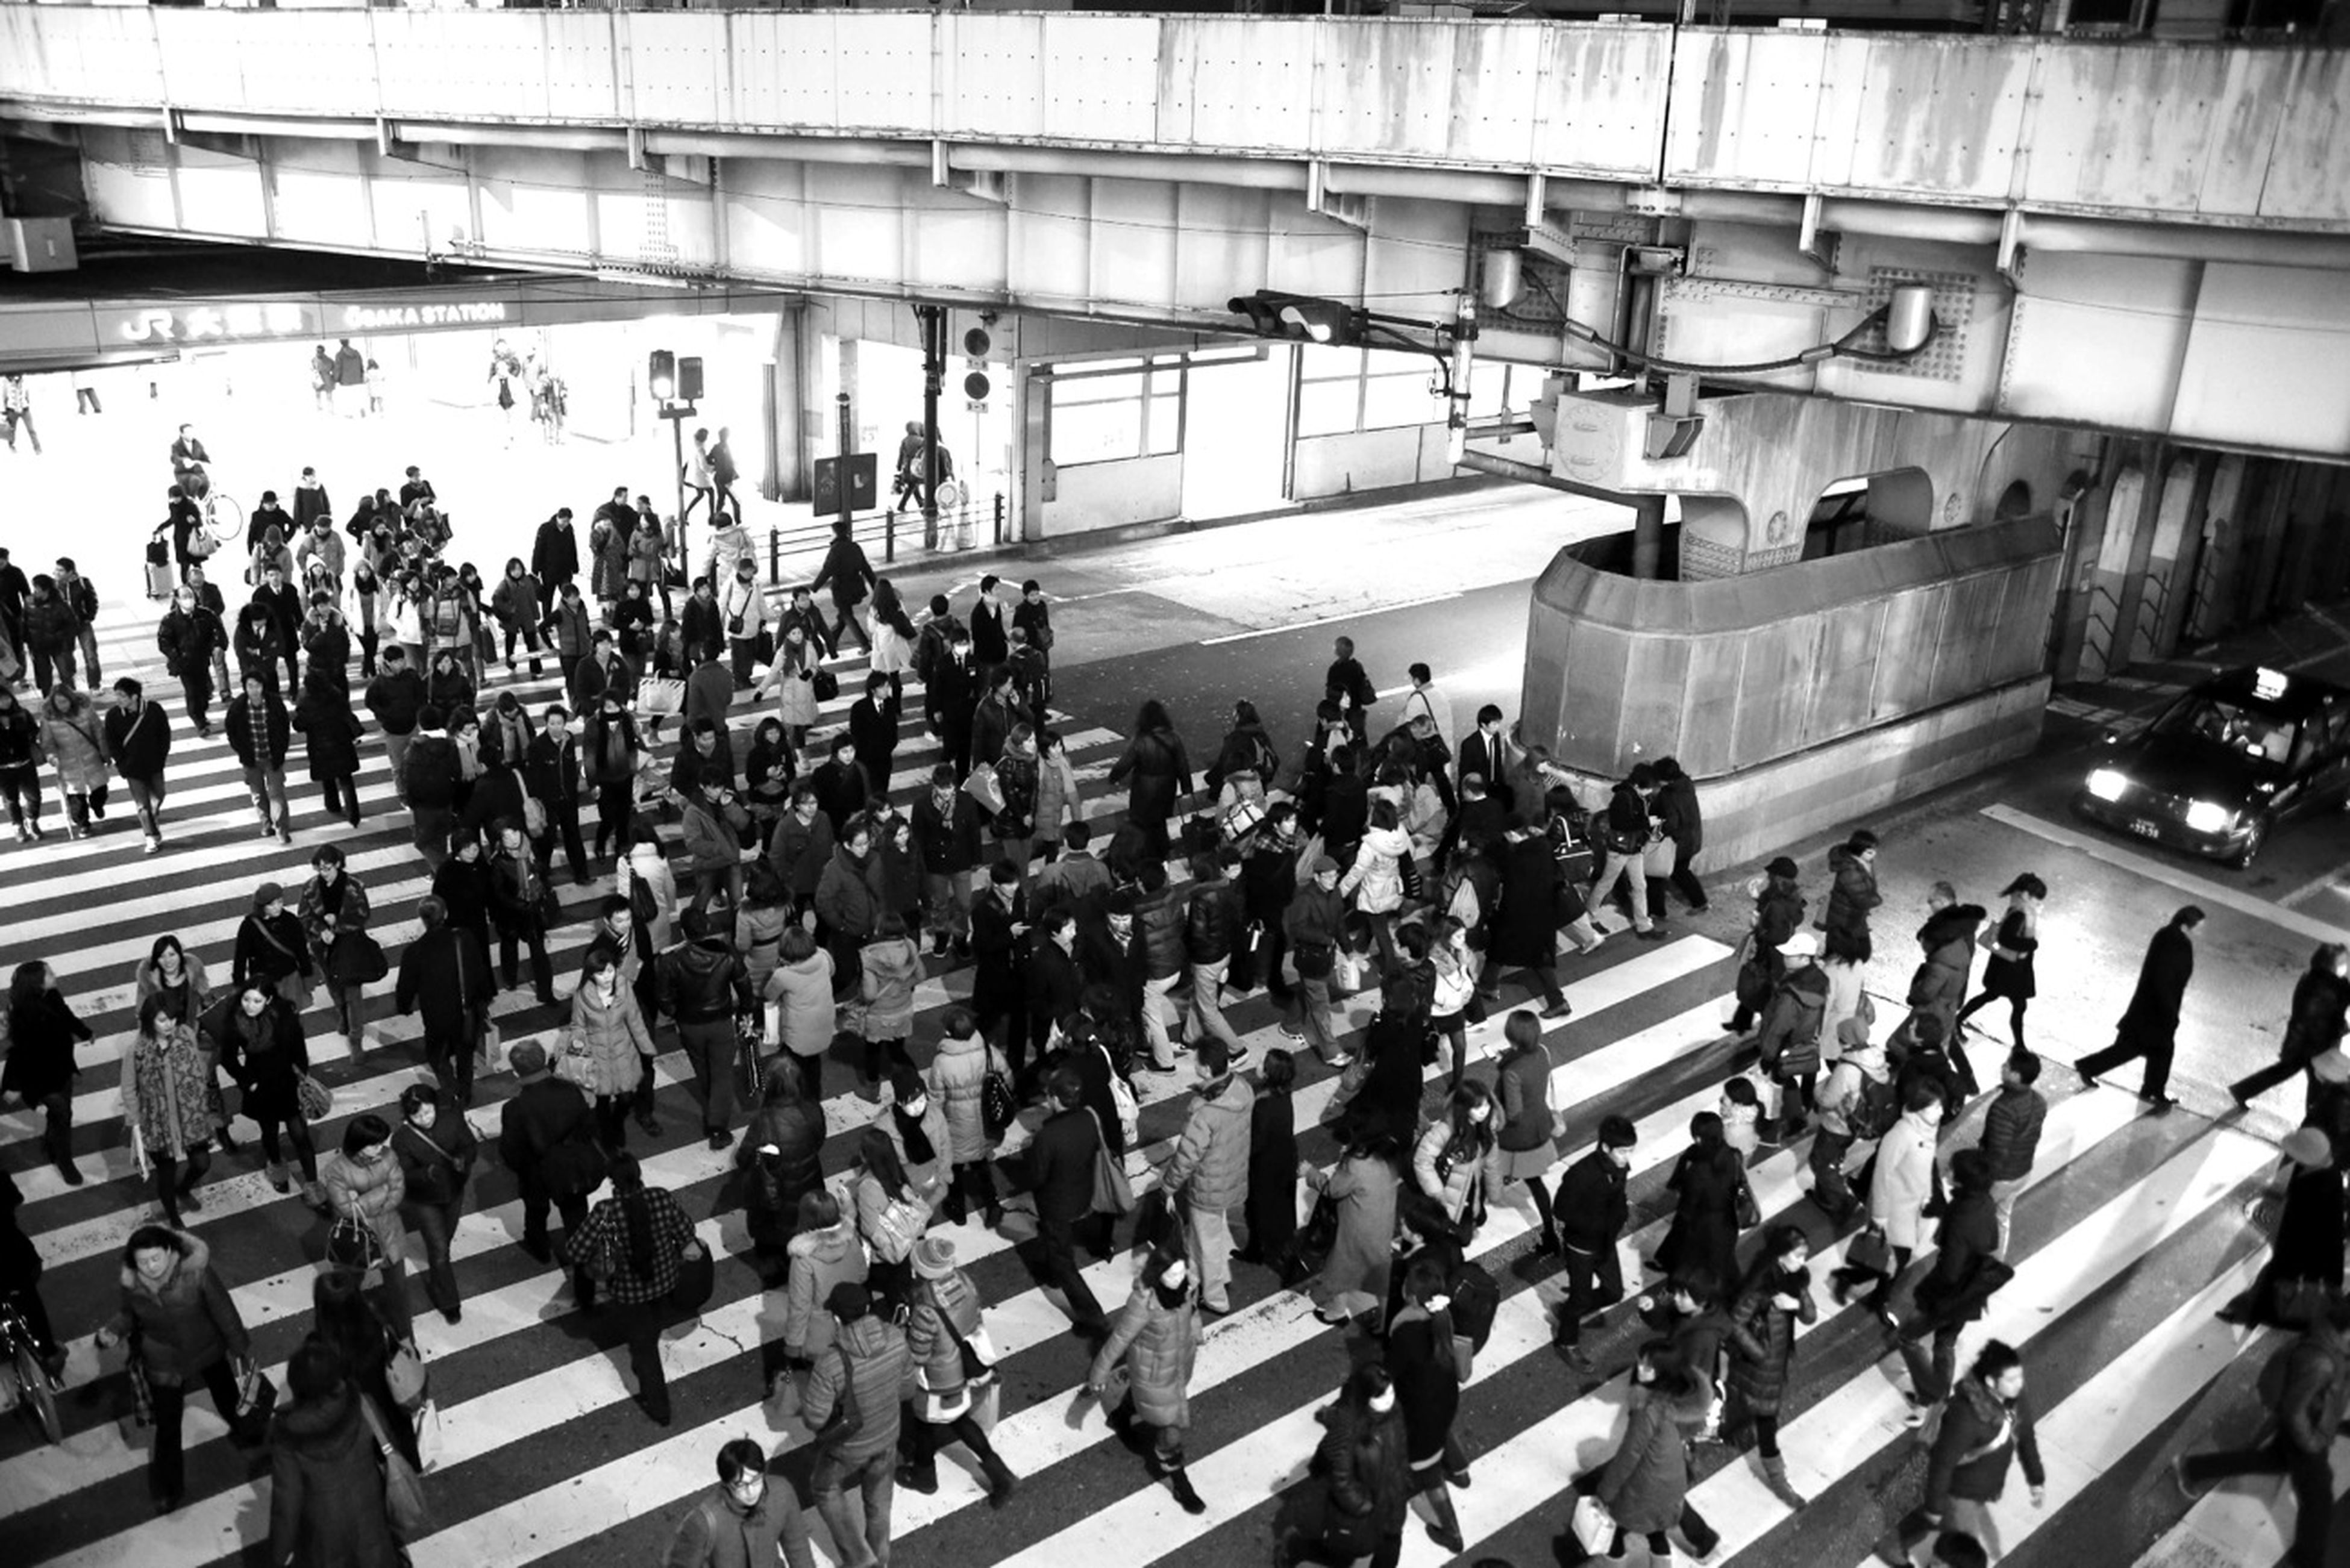 large group of people, transportation, mode of transport, person, men, public transportation, lifestyles, city life, railroad station, travel, high angle view, land vehicle, railroad track, rail transportation, railroad station platform, on the move, walking, leisure activity, mixed age range